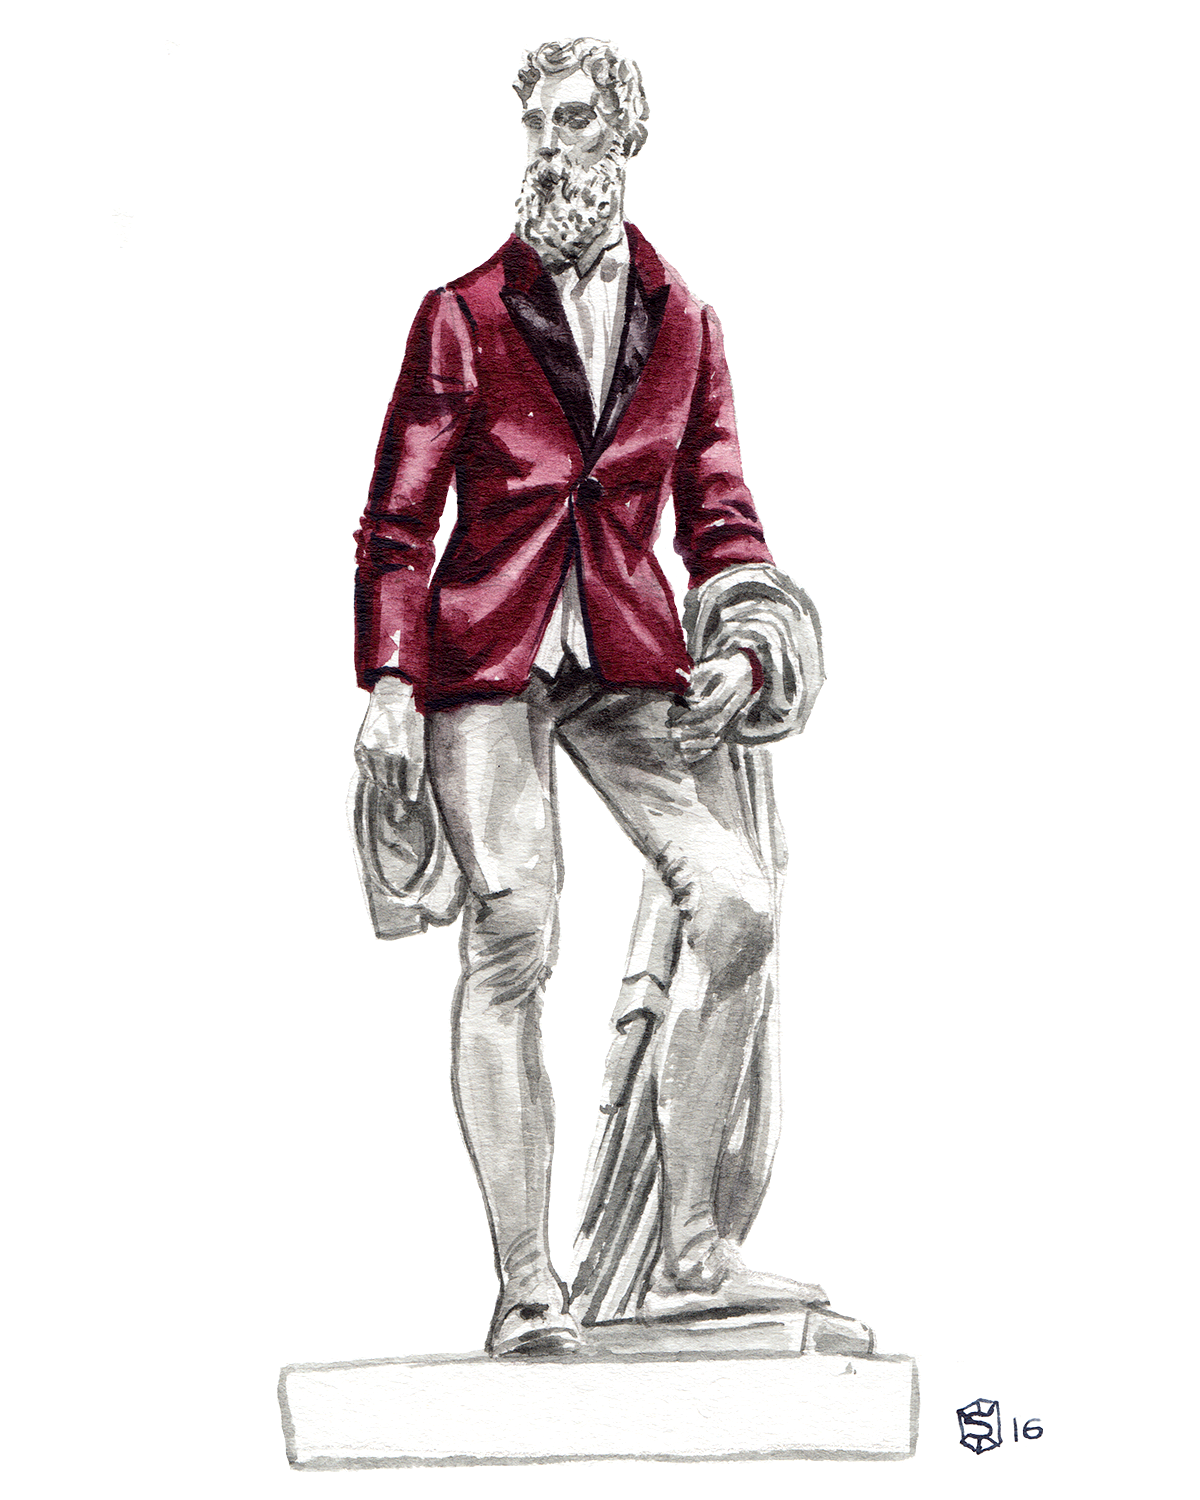 Menswear Illustration of a sculpture of Benvenuto Cellini wearing a red Express tuxedo blazer